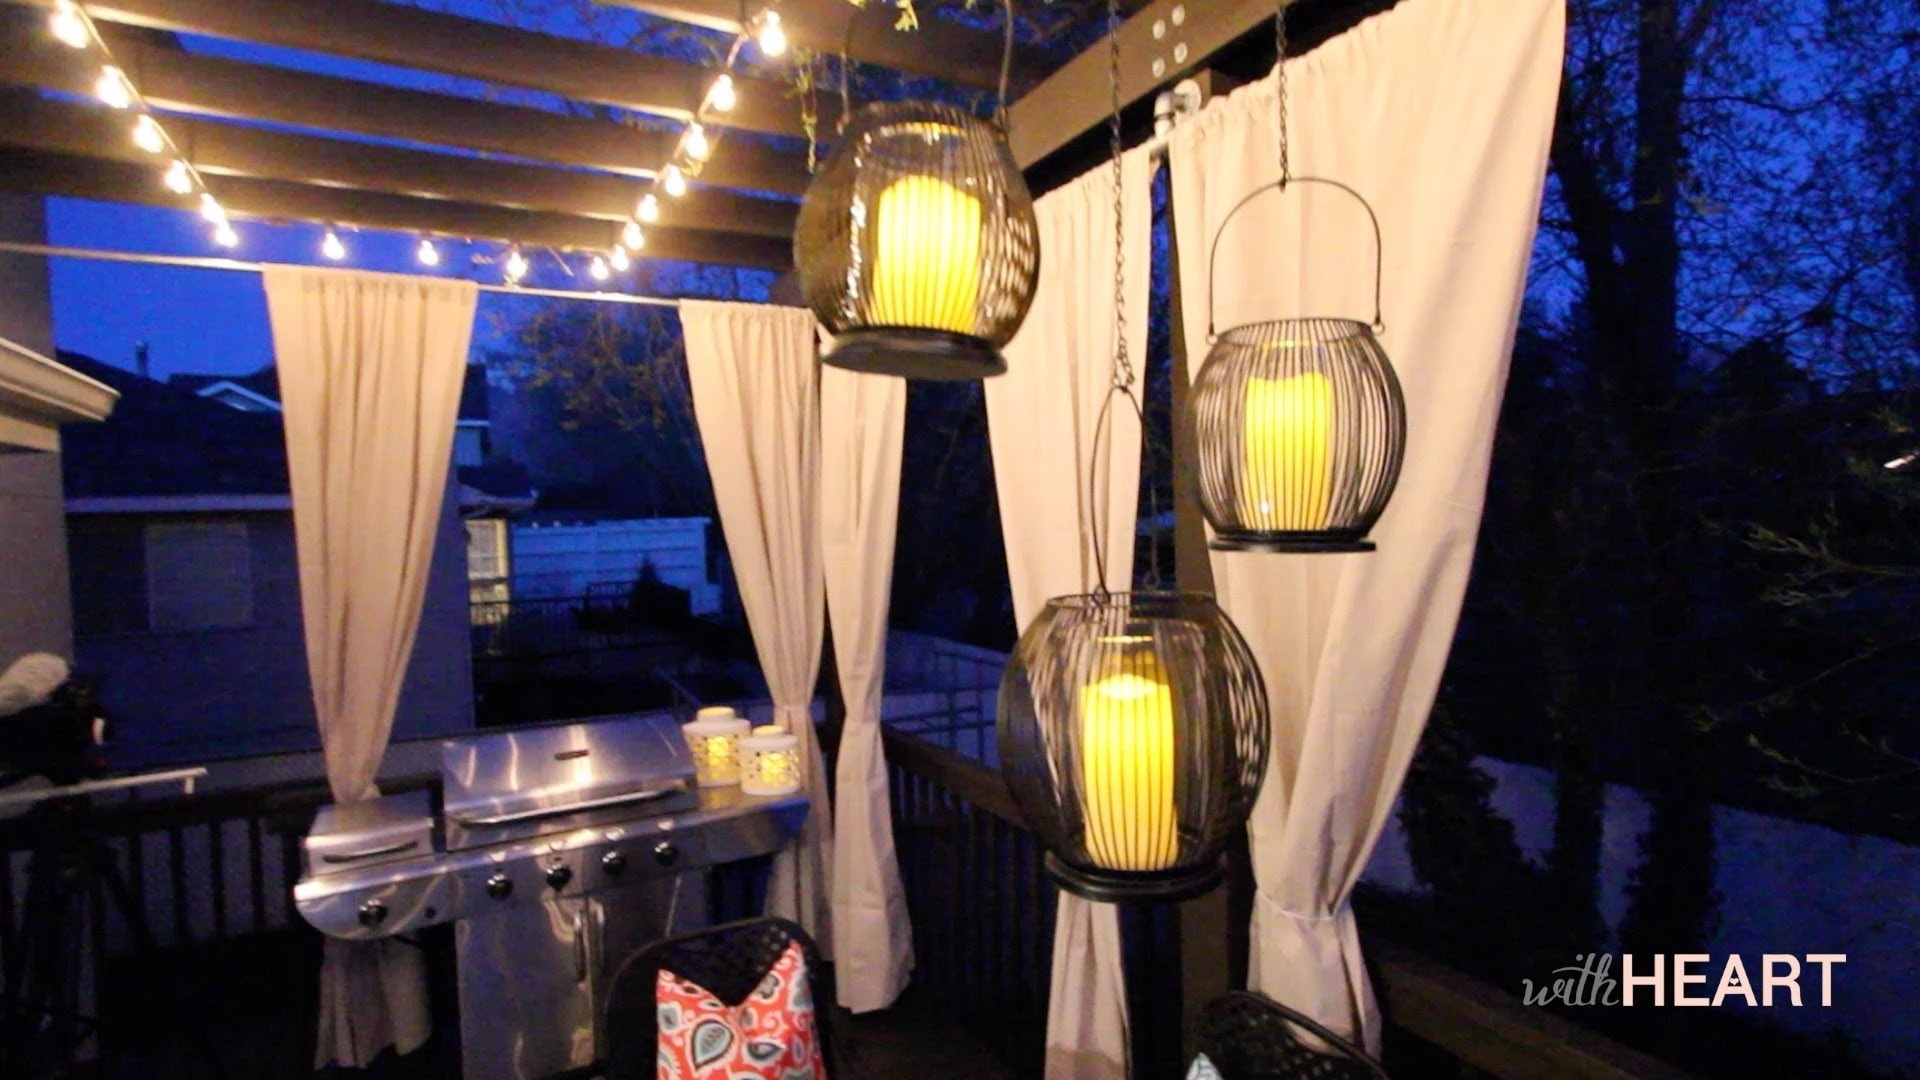 Outdoor String Lights And Hanging Lanterns | Withheart – Youtube For Diy Outdoor Hanging Lights (#13 of 15)